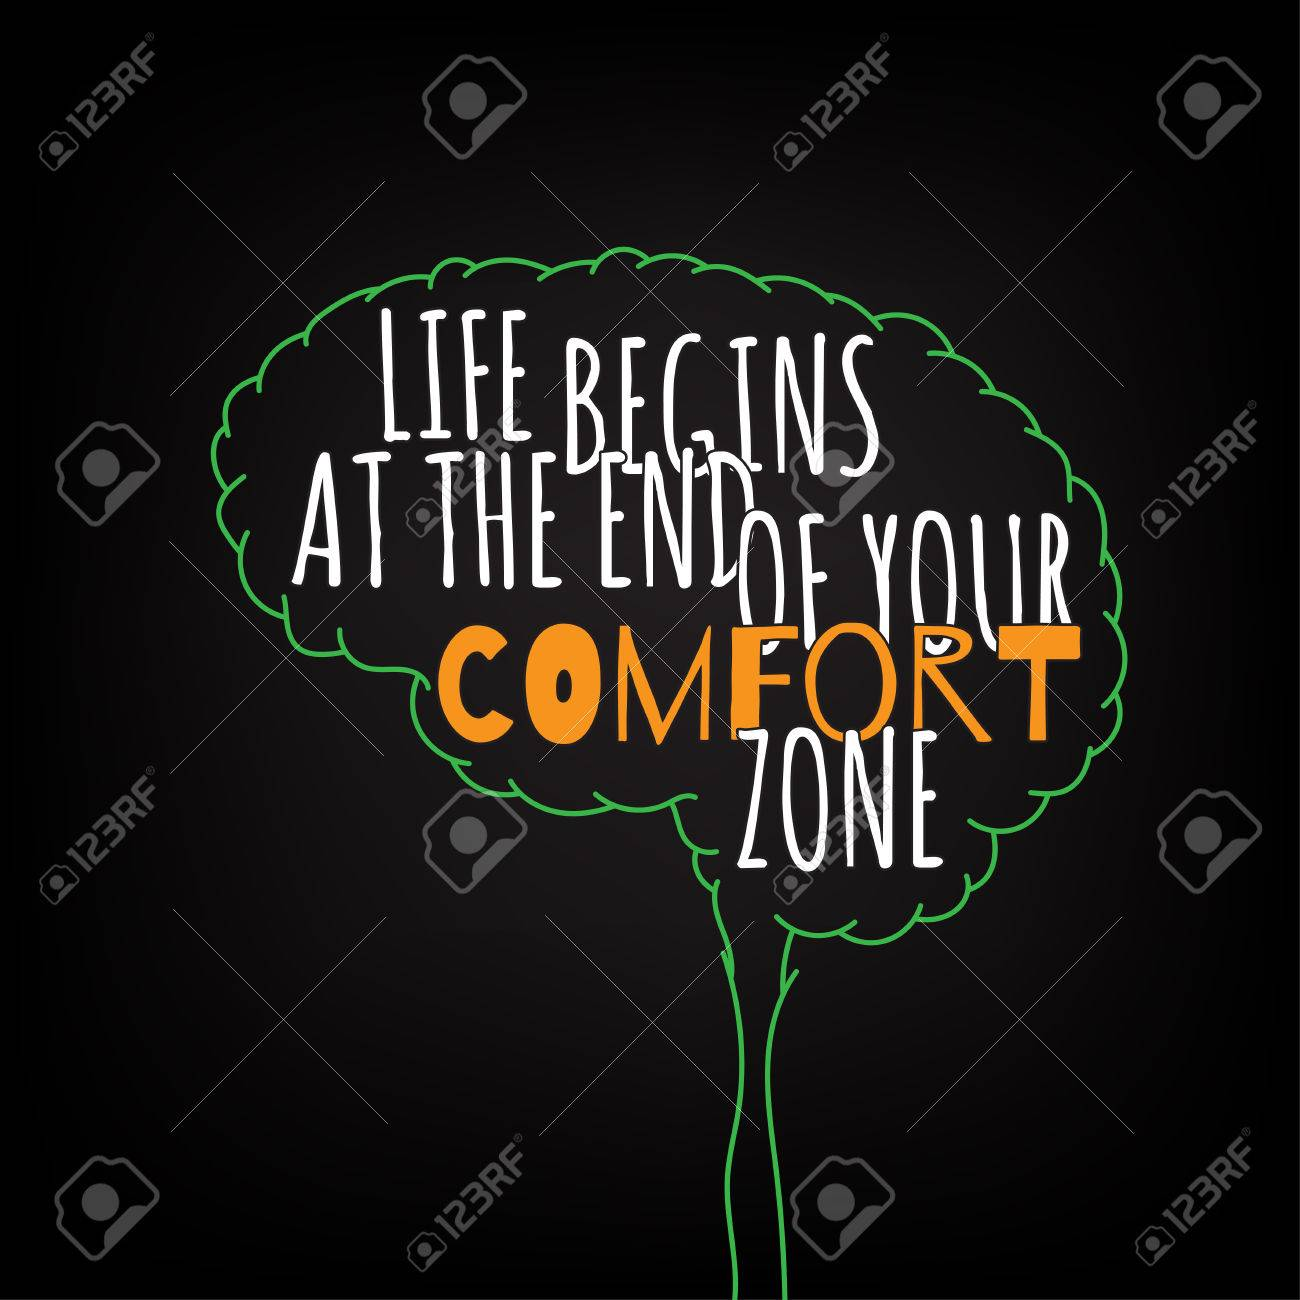 life begins at the end of your comfort zone motivation clever ideas in the brain poster